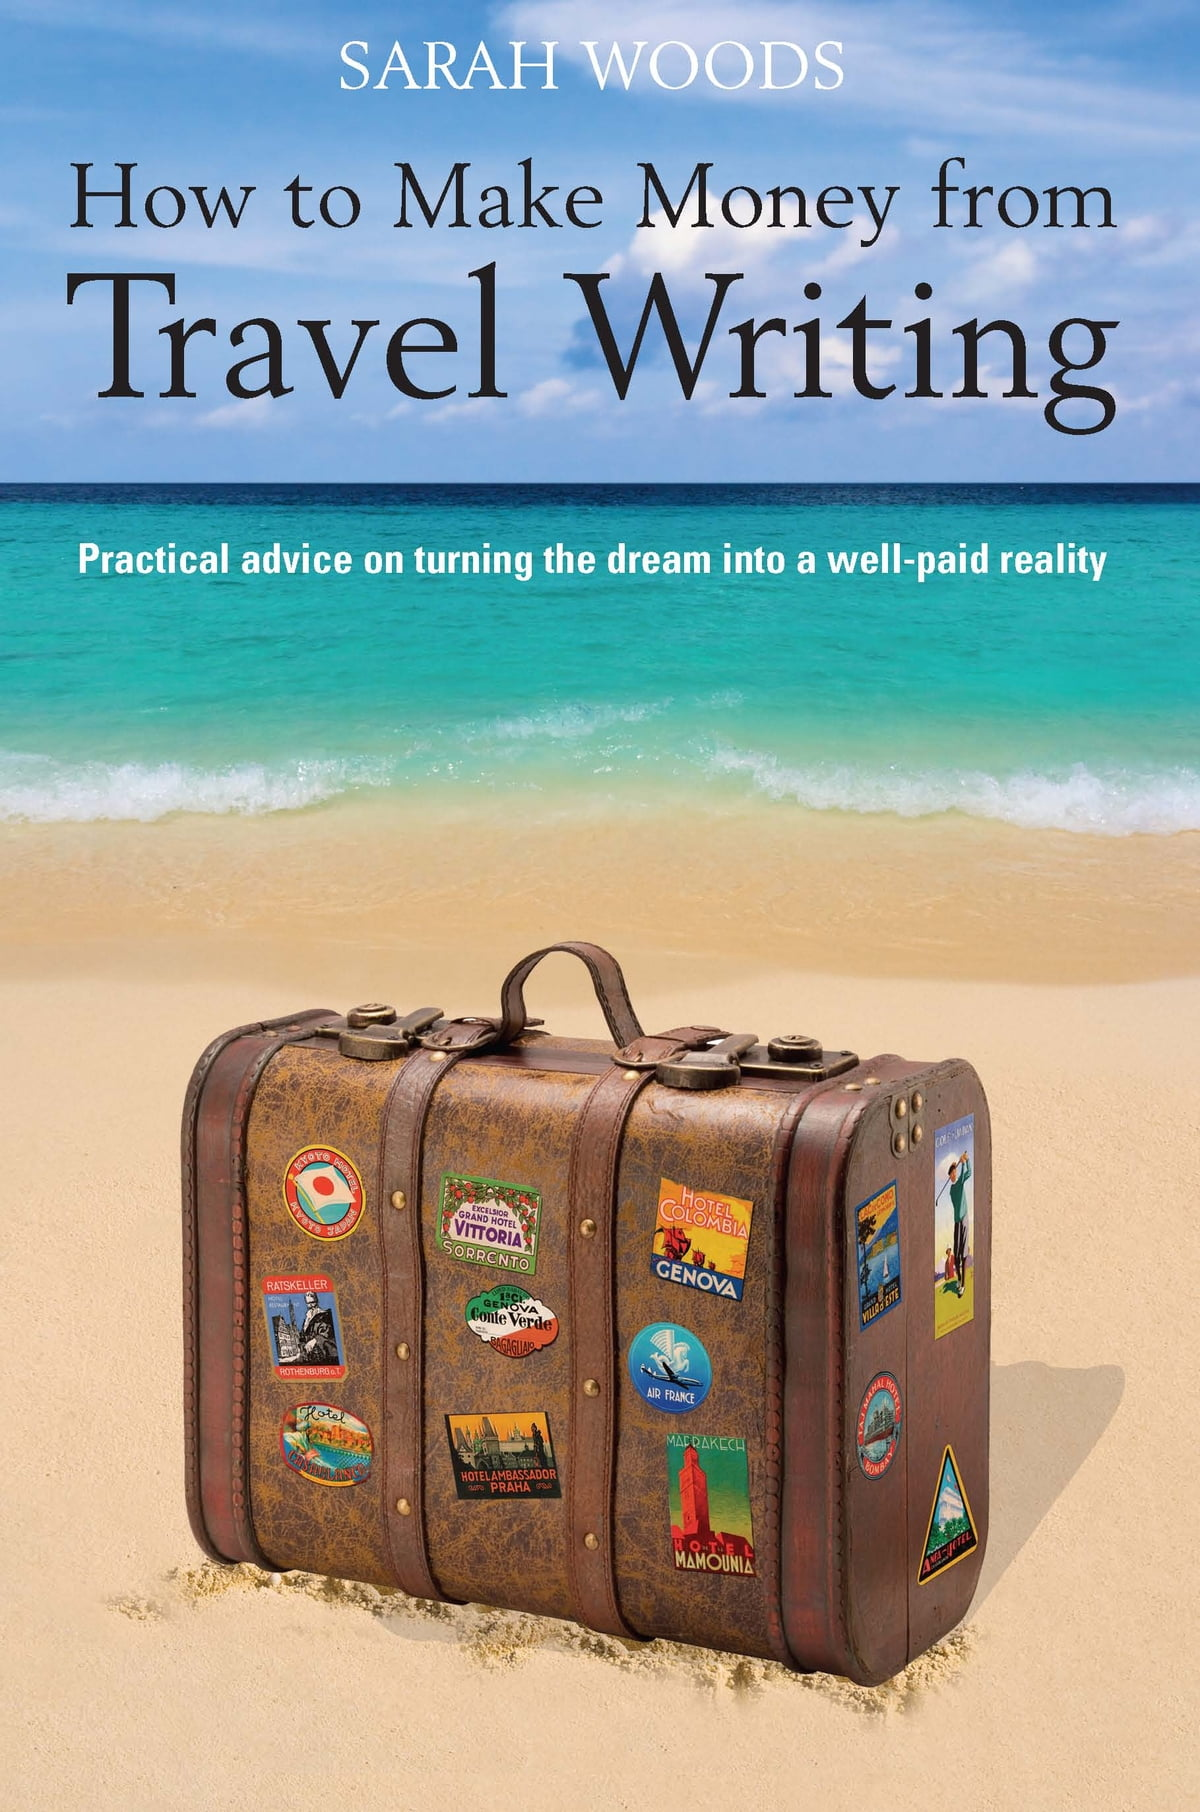 how to make money from travel writing ebook by sarah woods 9781848034624 rakuten kobo